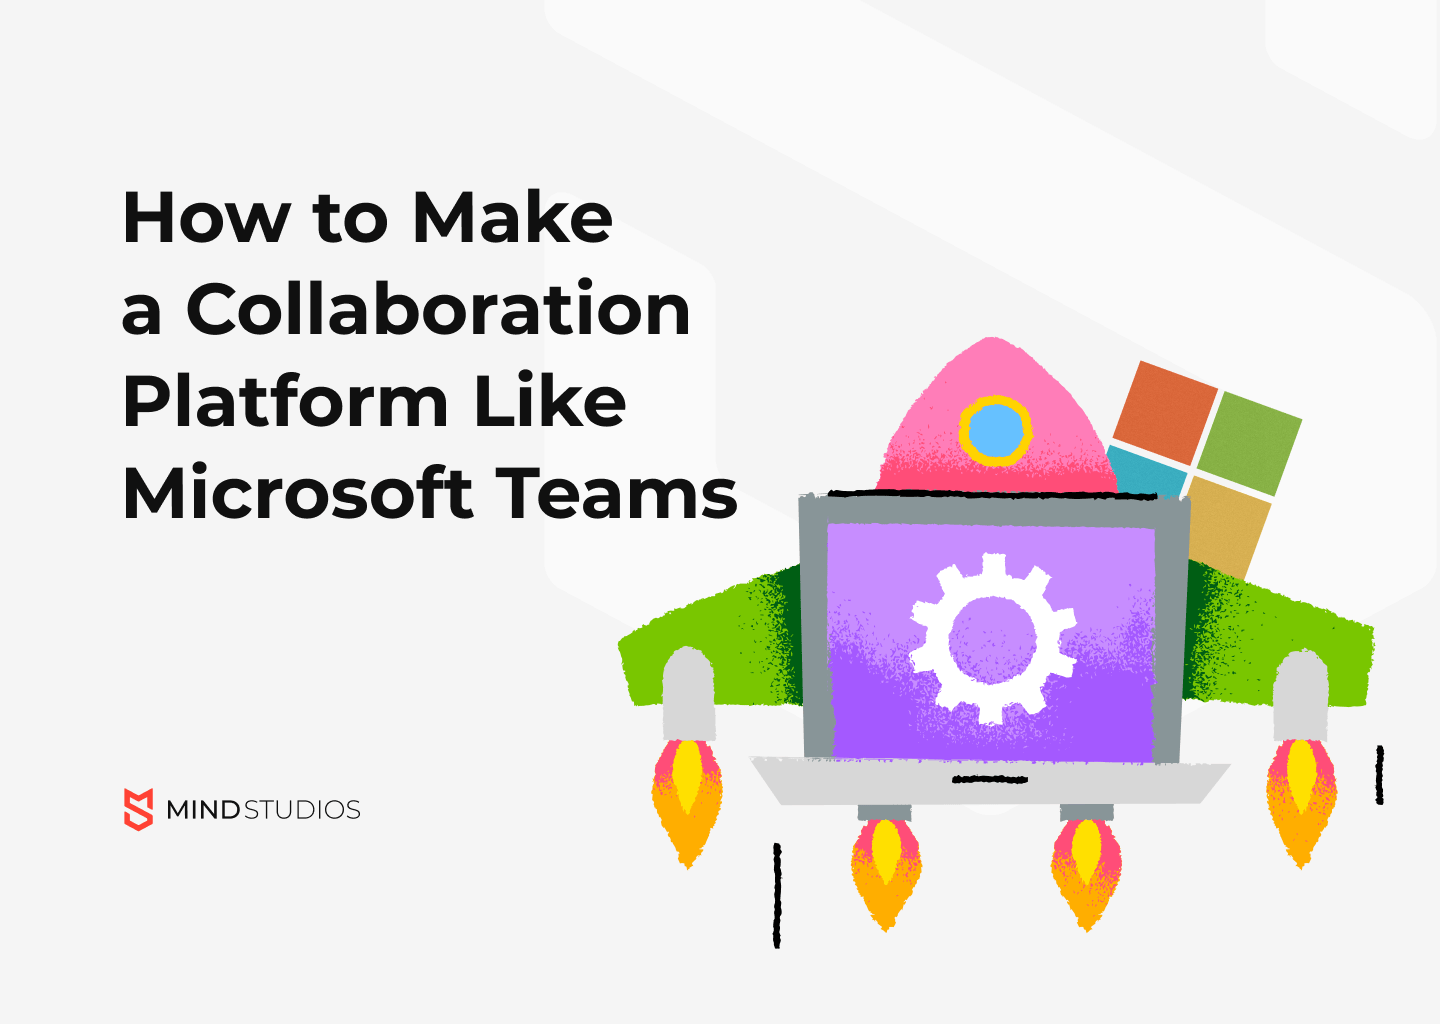 How to Make a Collaboration Platform Like Microsoft Teams